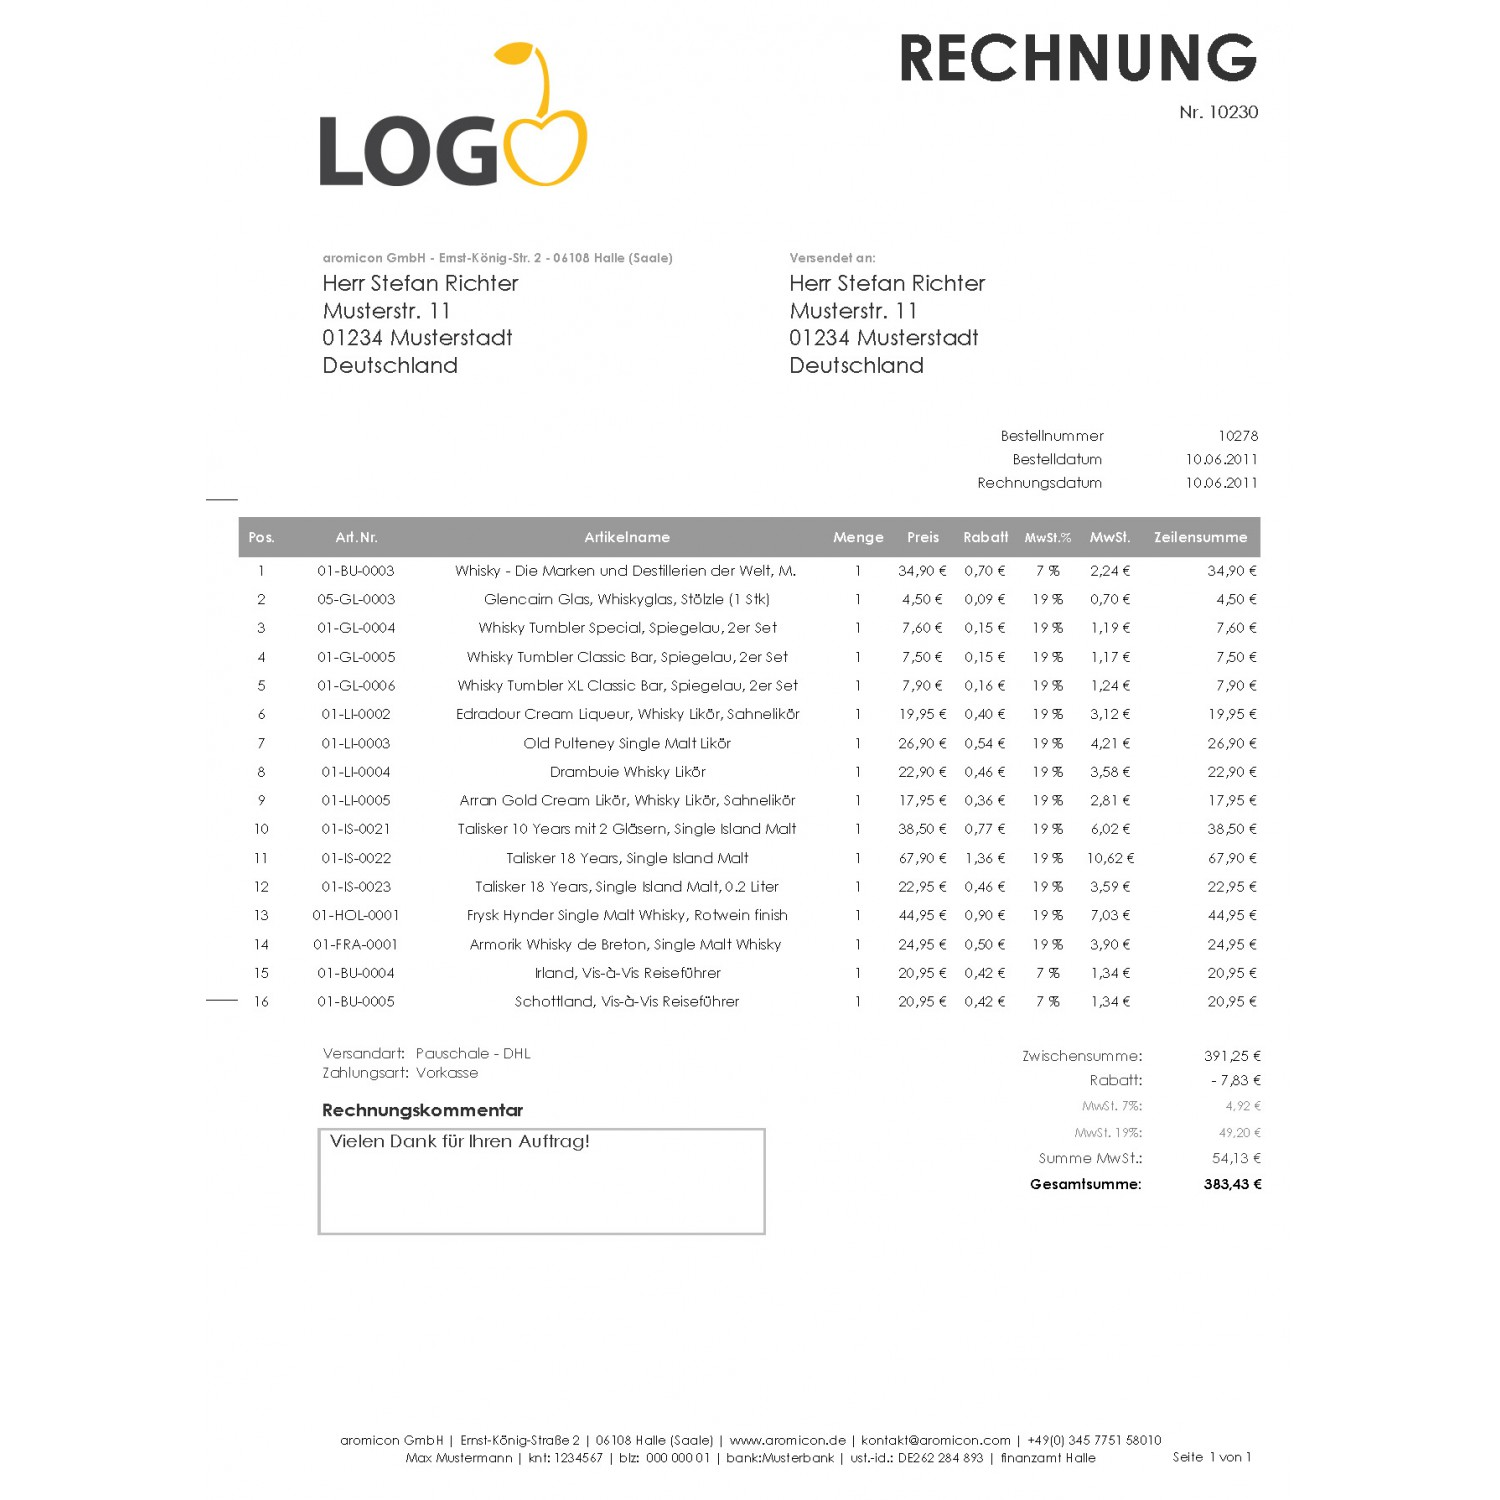 Make A Receipt Online Word Download German Invoice Template Word  Rabitahnet Cash Receipt Machine Word with Printed Receipt Invoice Pdf Pro  Windowinvoice Invoice Template German Simple Invoice Invoicing Mac